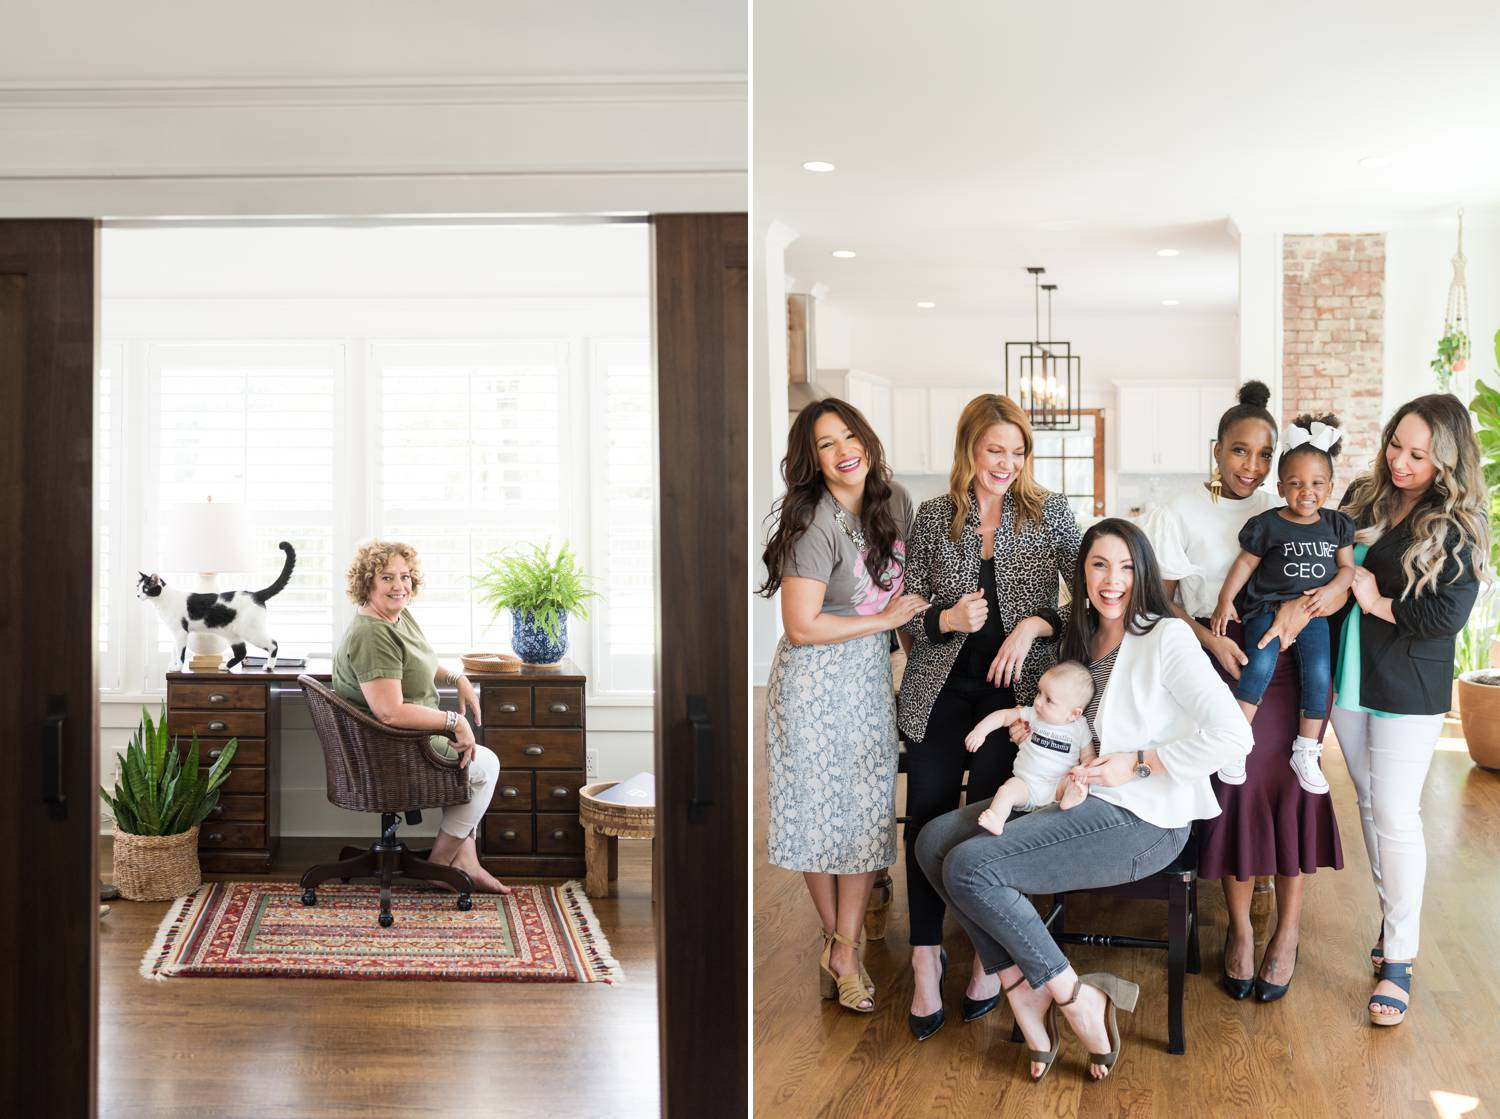 By Mandy Liz: In one photo, a woman sits at a desk framed by a large window. Her cat is standing on her desk. In another photo, a group of entrepreneurs gather together with two children to celebrate positive client feedback.